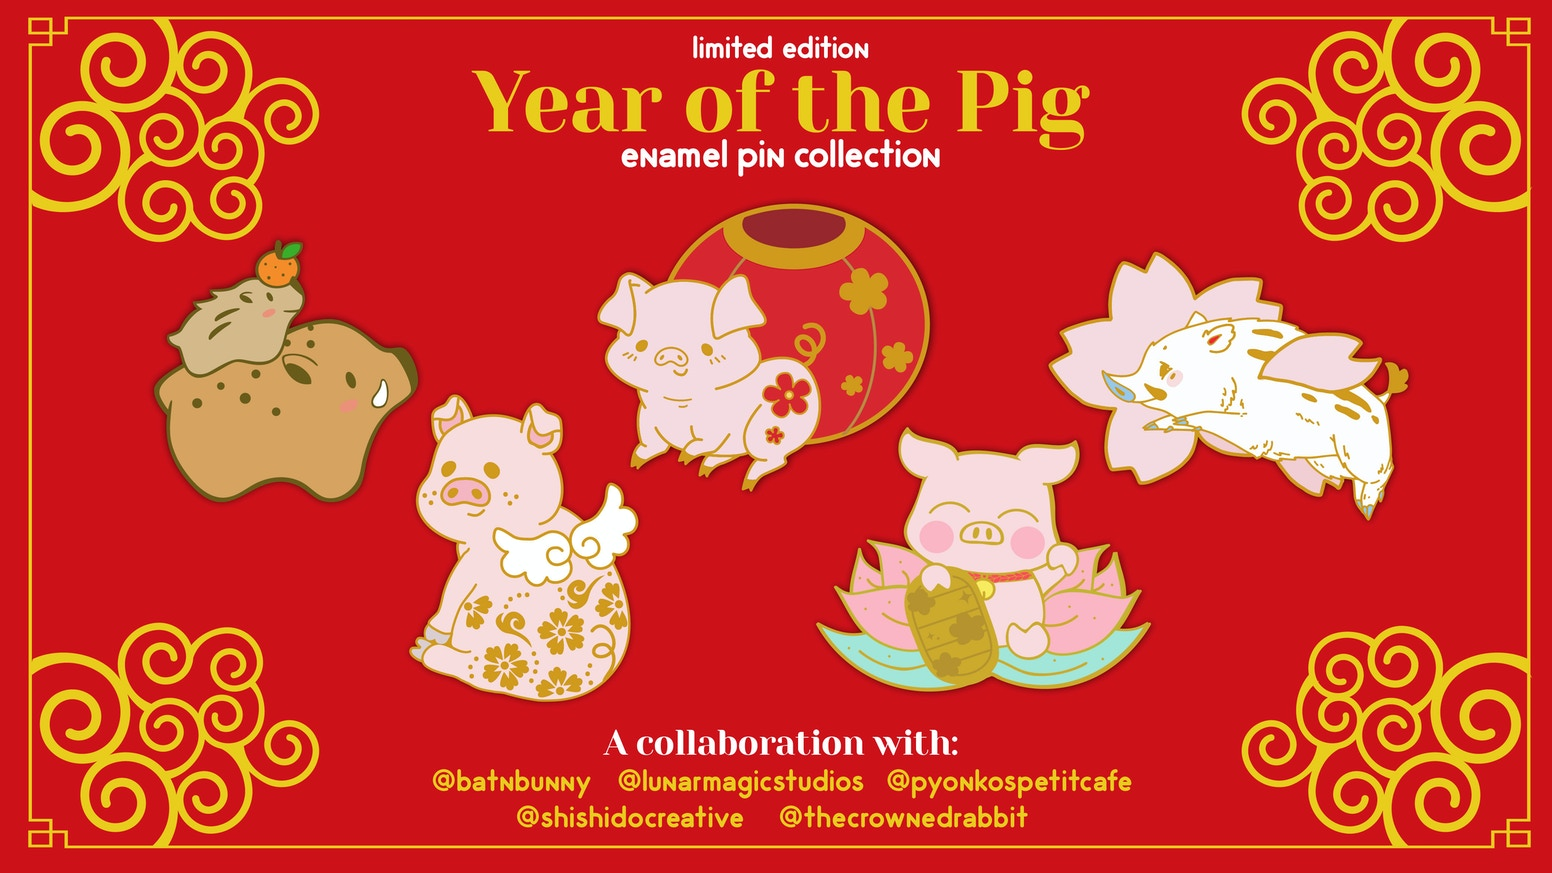 Year of the Pig (2019) : An Enamel Pin Collab Series by